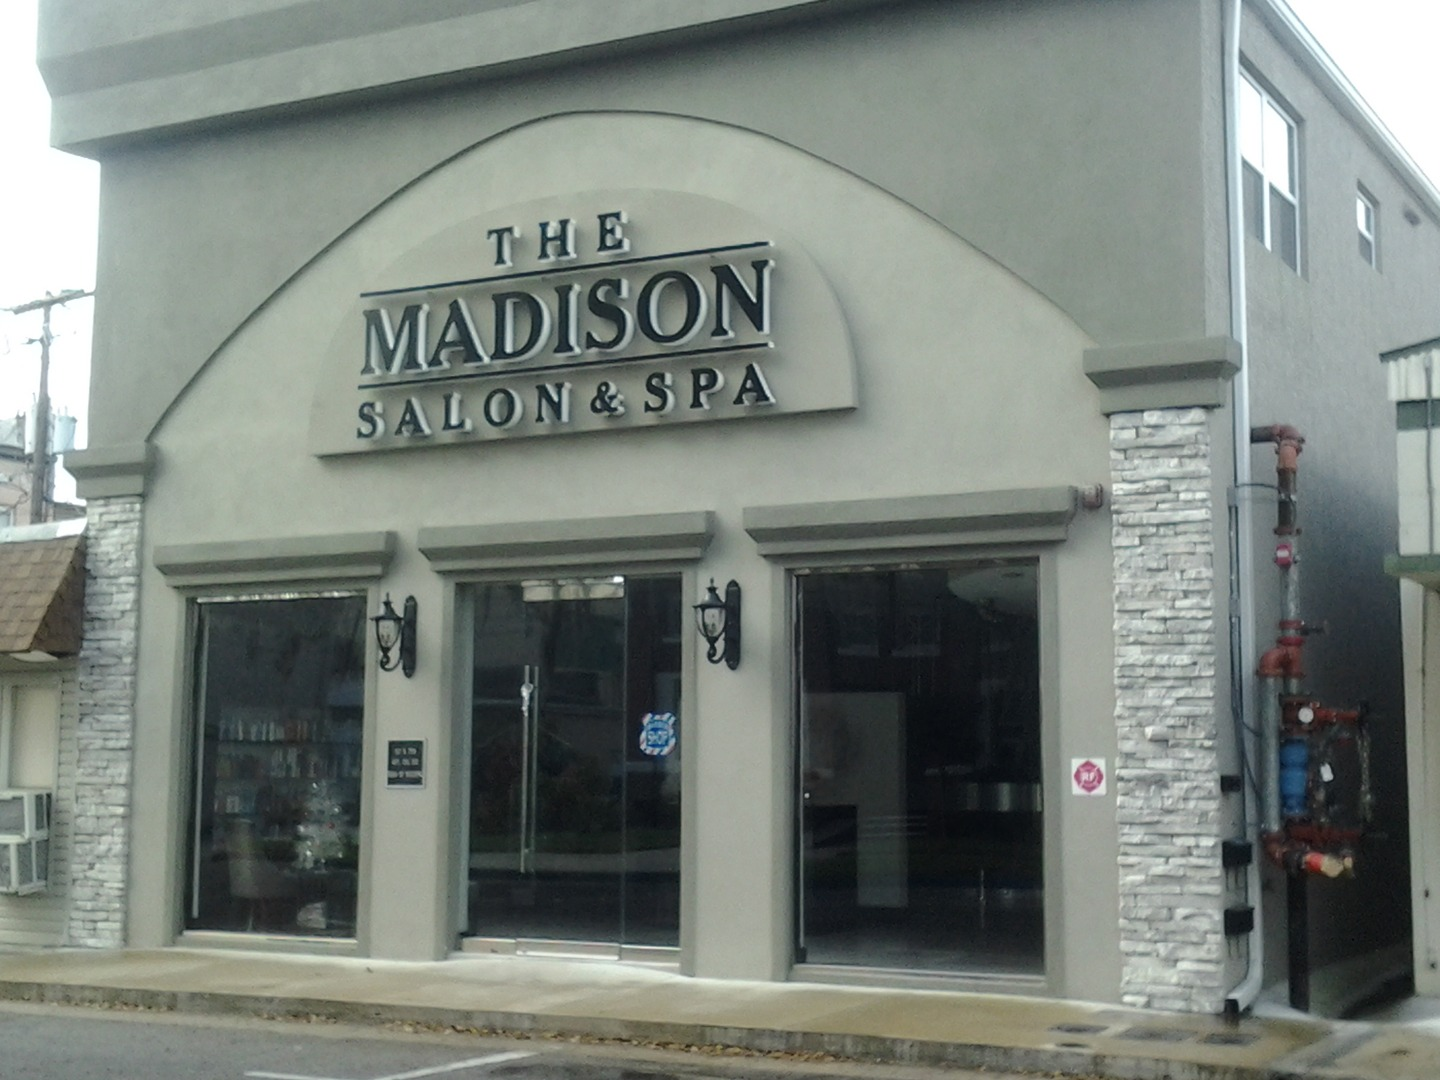 The Madison Salon & Spa